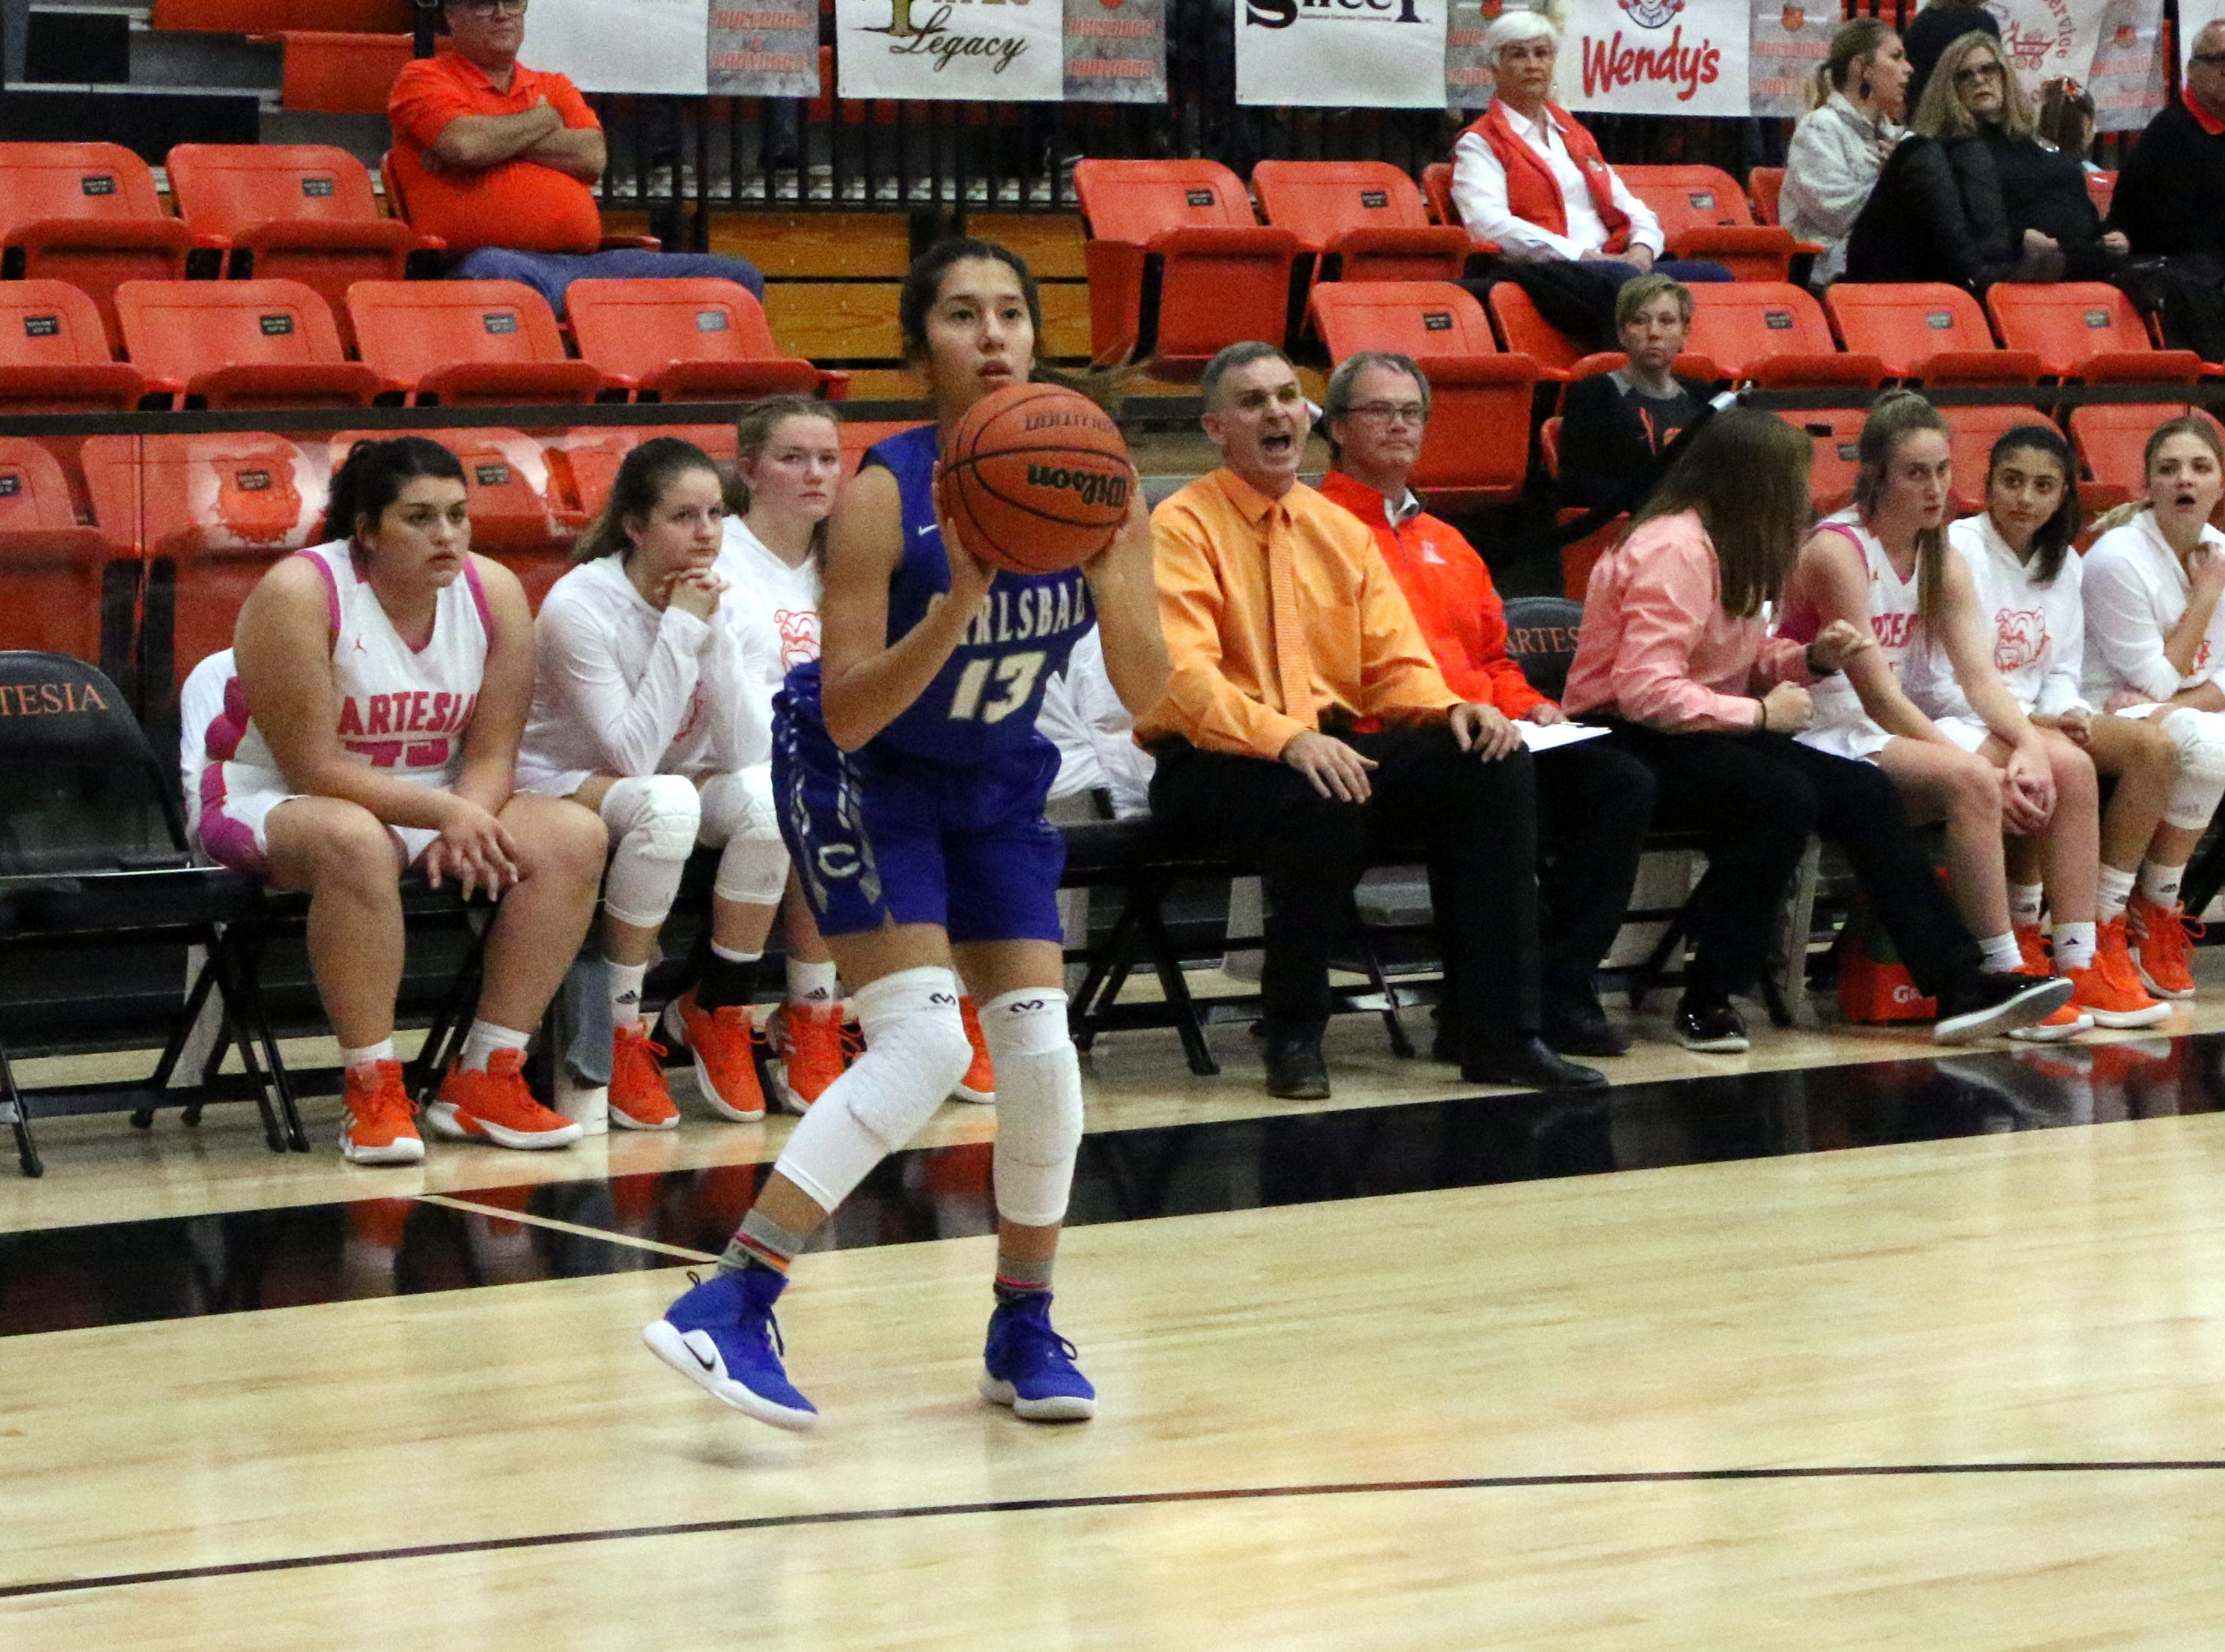 Carlsbad's Tori Flores loads up for a 3-point shot during Friday's game against Artesia. Flores finished with four points in the win.